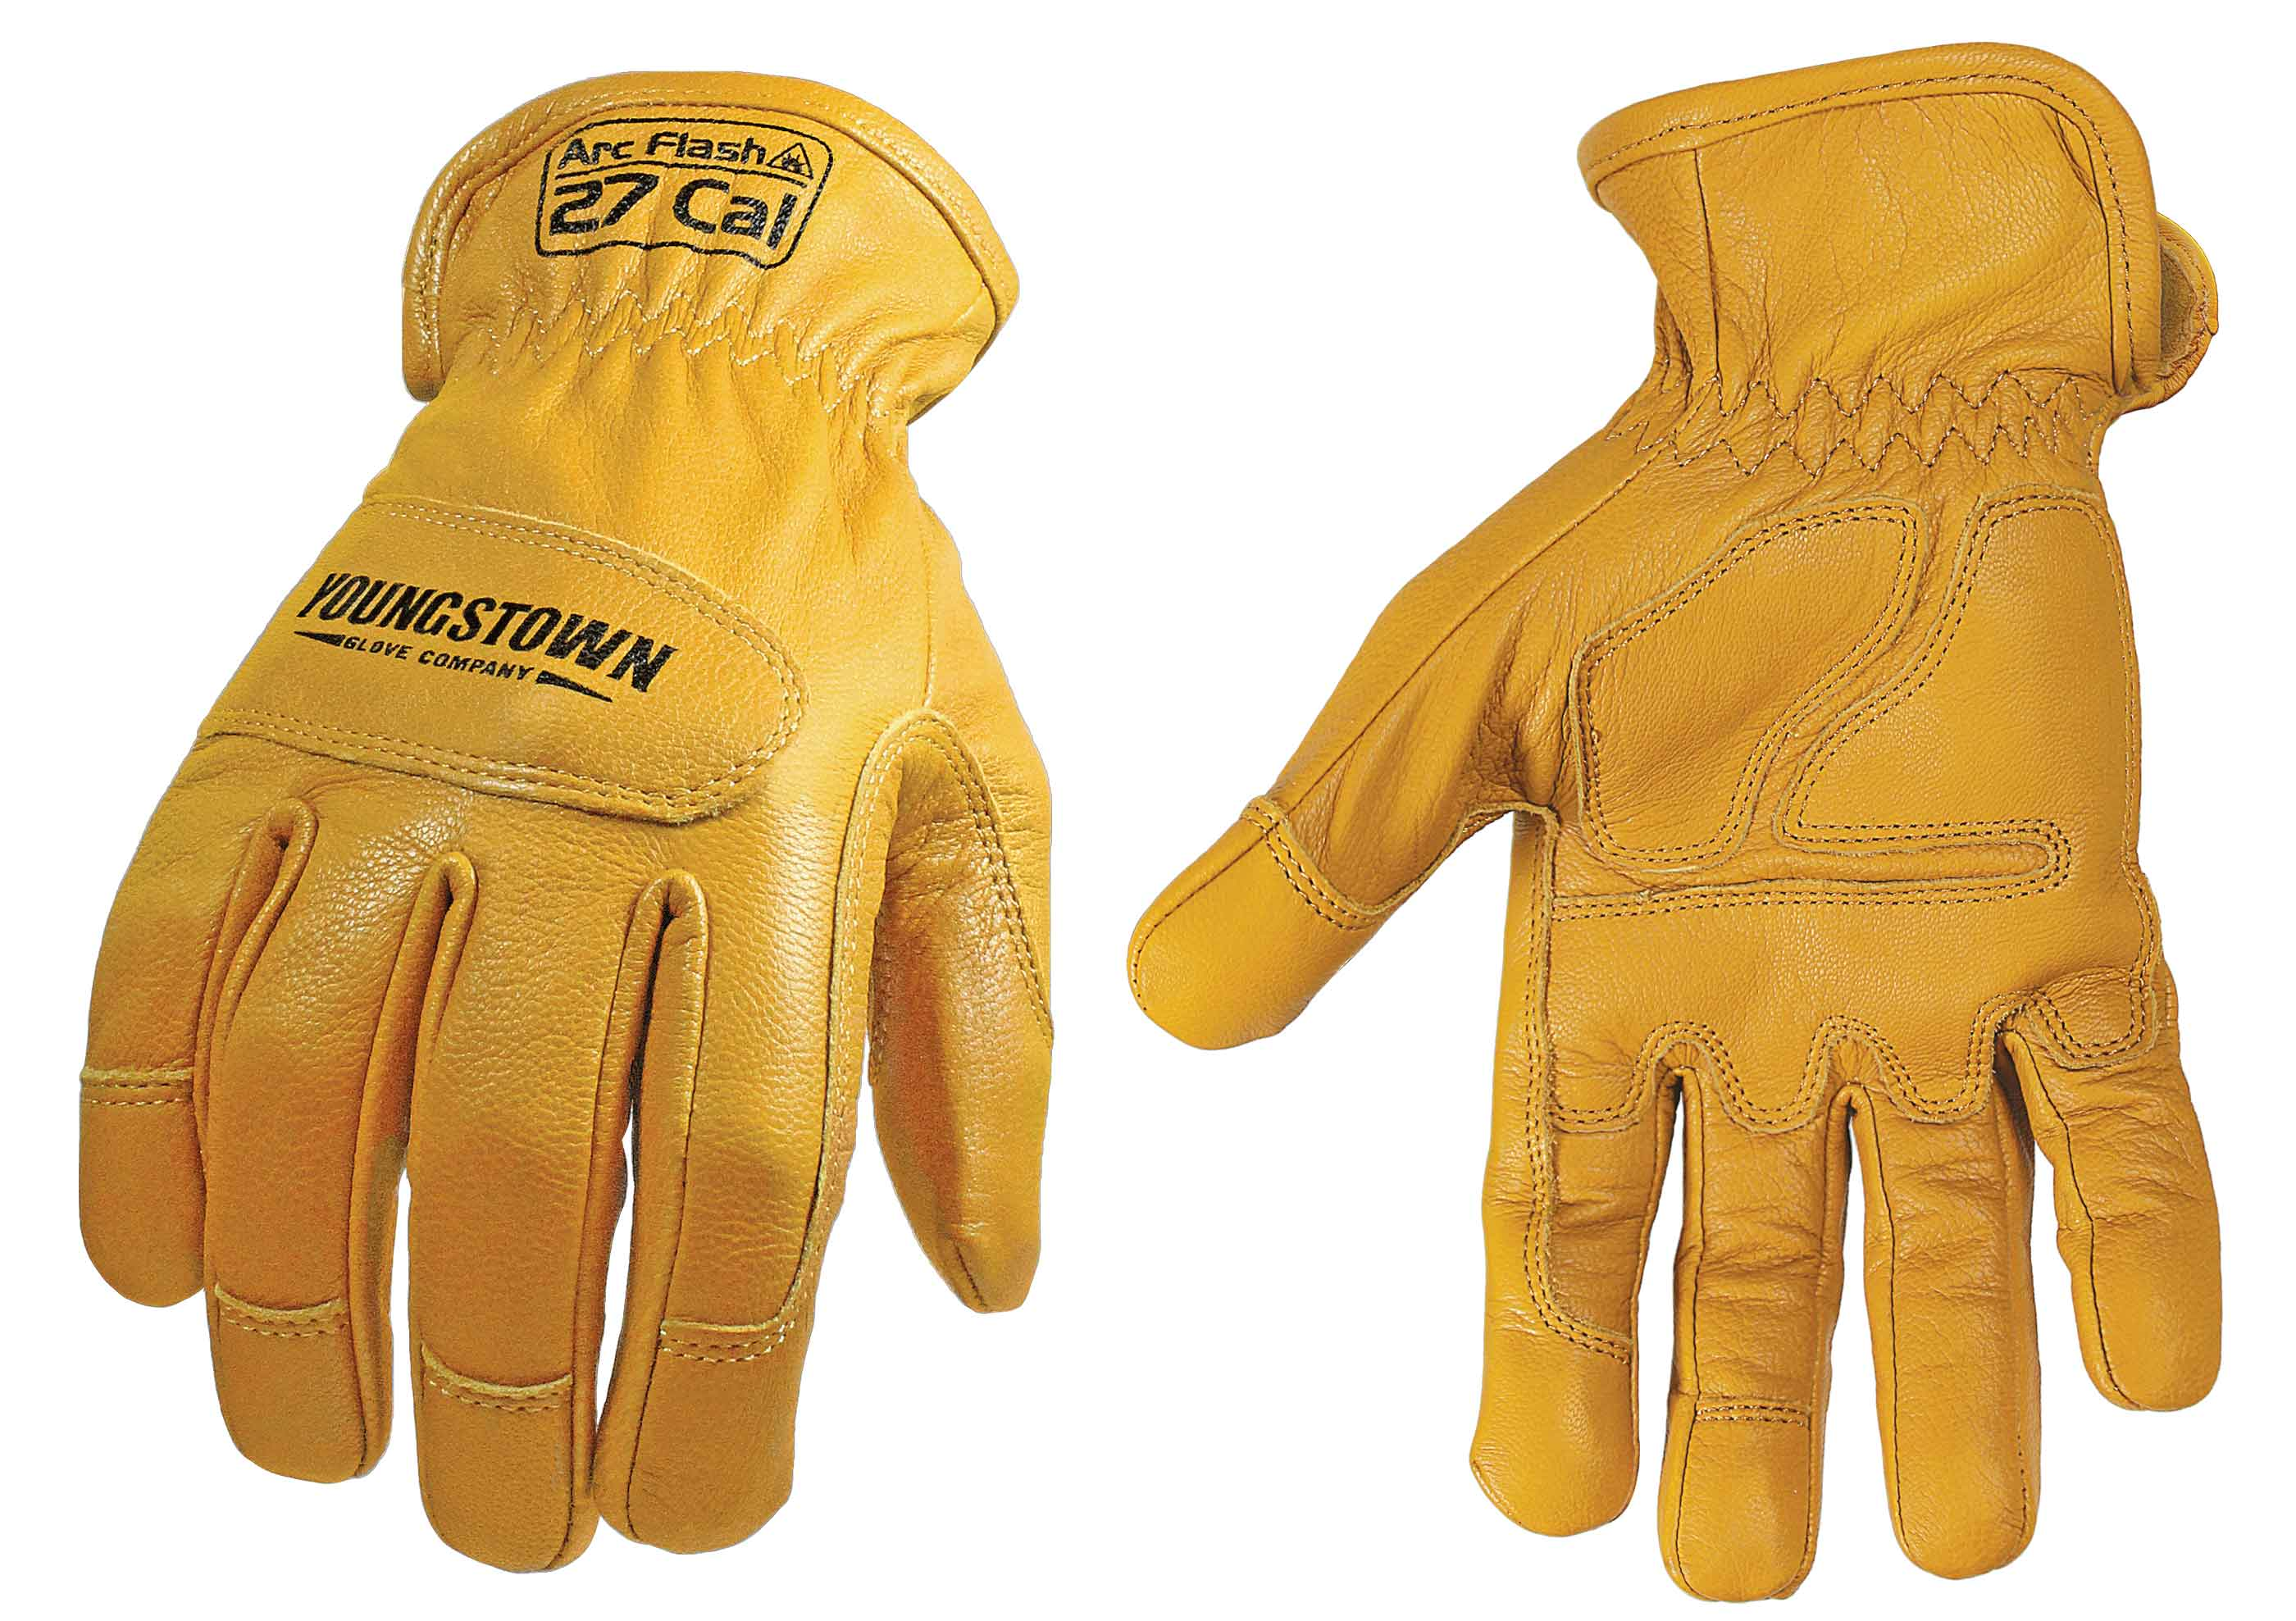 Youngstown FR Ground Glove Lined with Kevlar® Medium